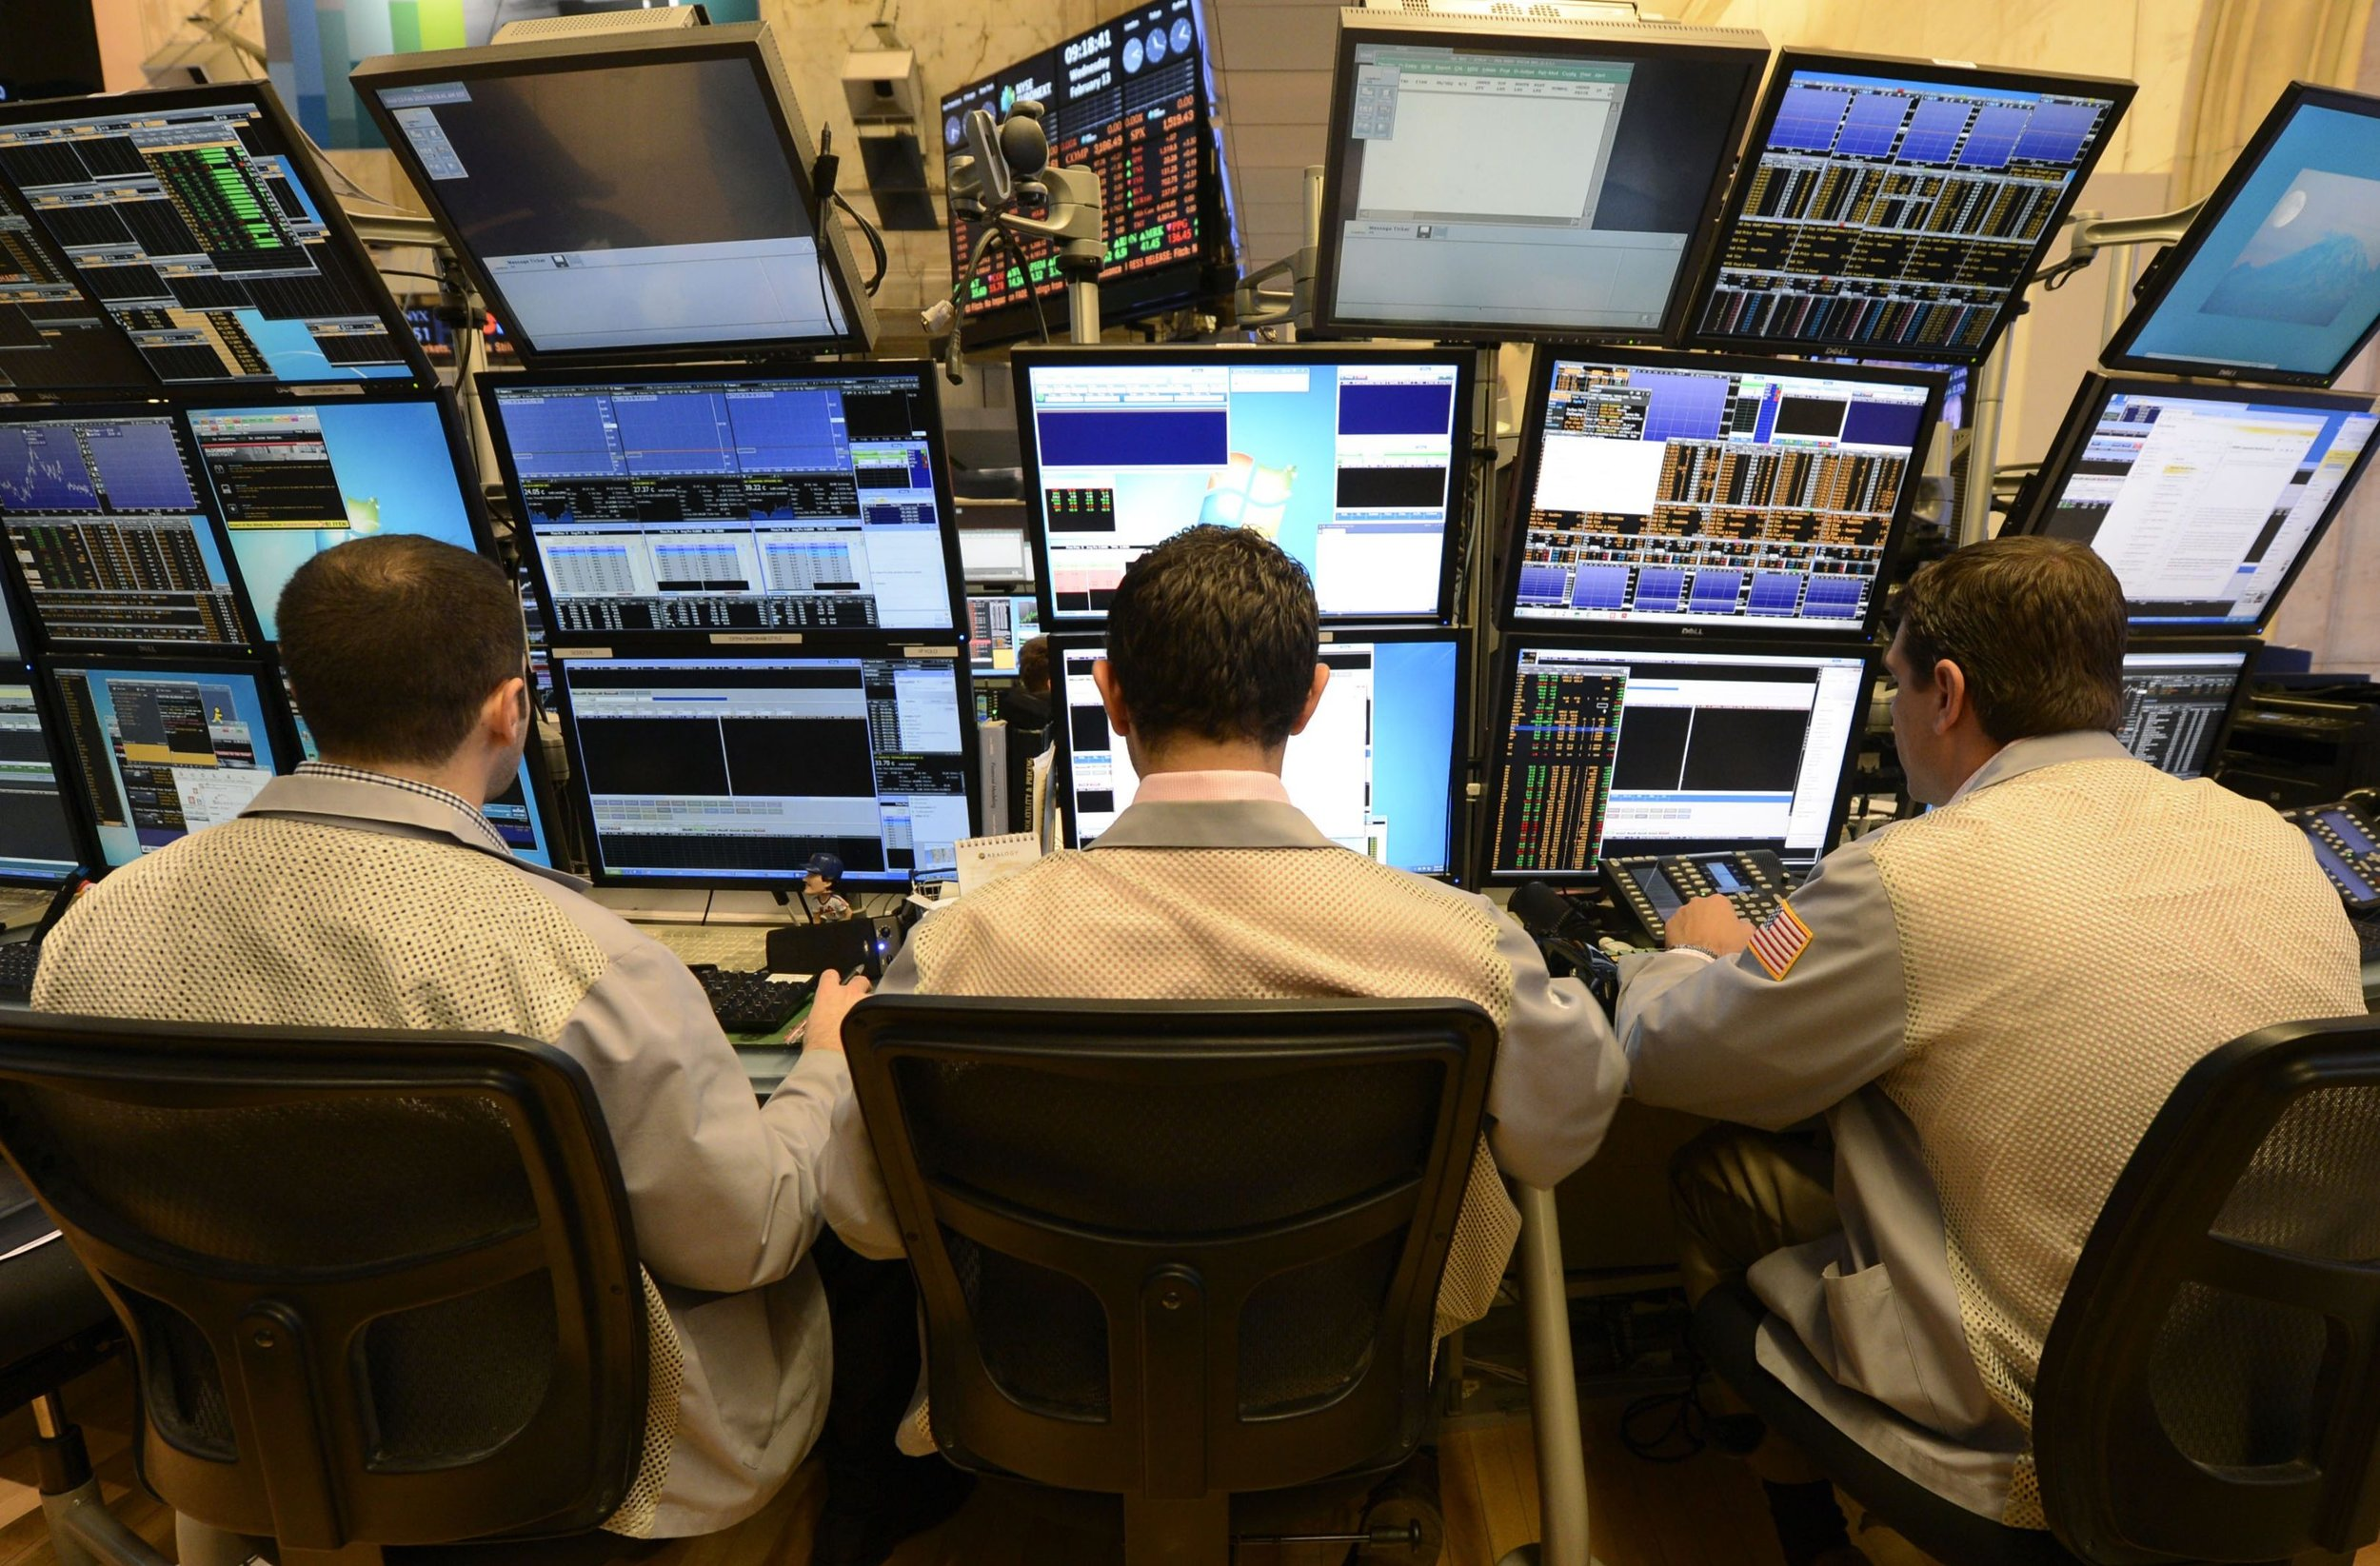 Vertically stack monitors, from wall street. Photo from  SRSV - Systemic Risk and Systemic Value, Sept 2014